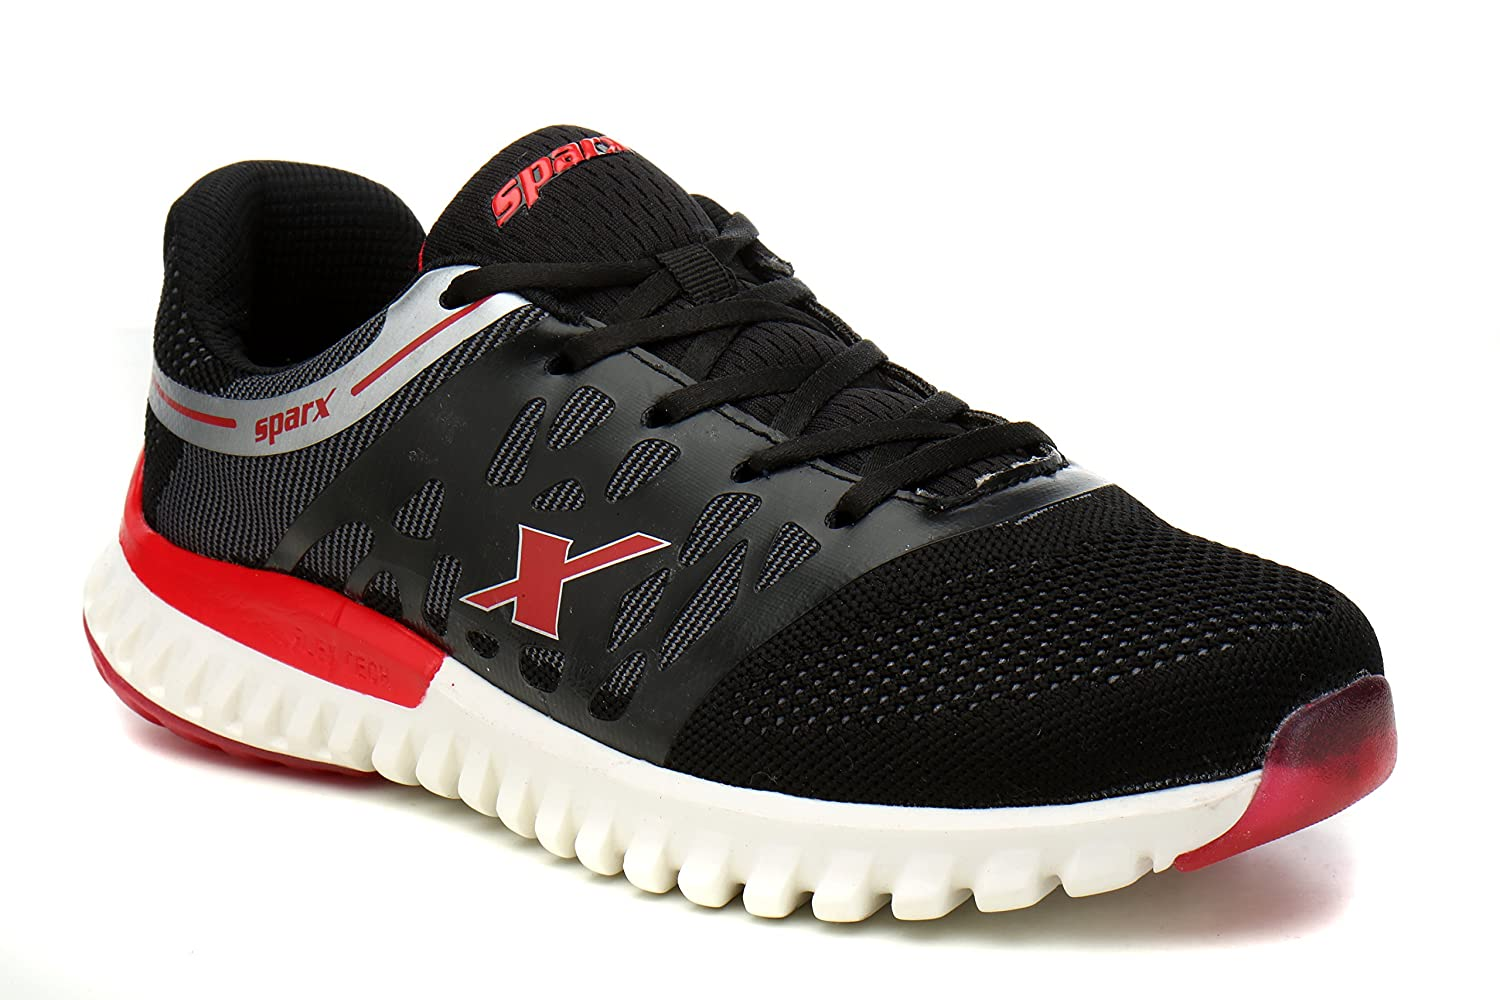 Buy Sparx Men's Running Shoes at Amazon.in